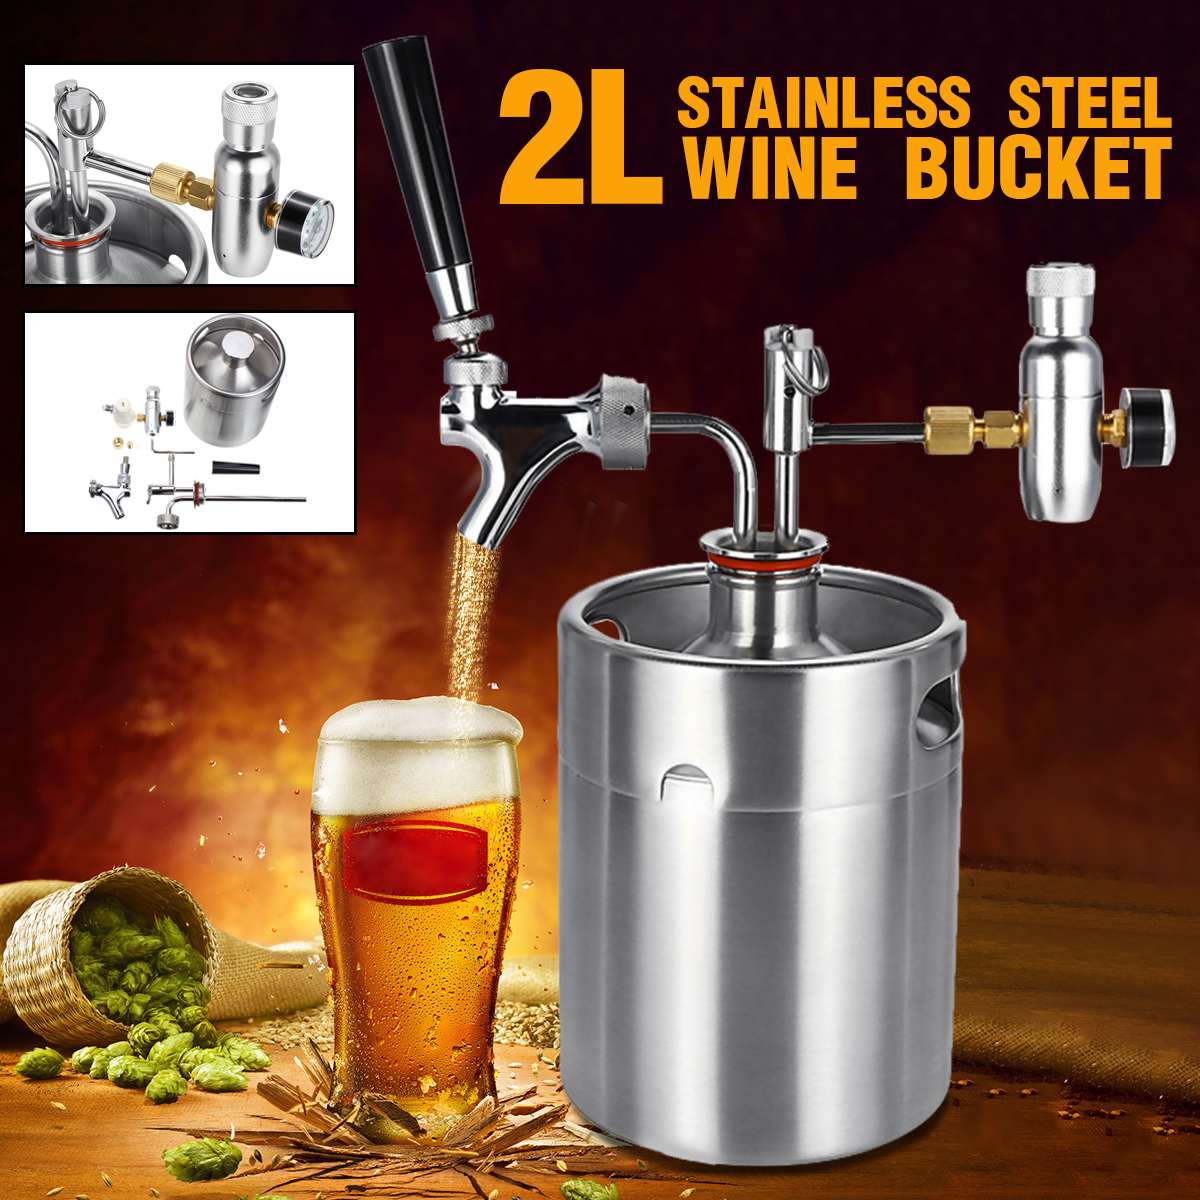 2L Durable Stainless Steel Wine Beer Keg Home Beer Dispenser Growler Beer Brewing Craft Mini Beer Keg With Faucet Pressurized image